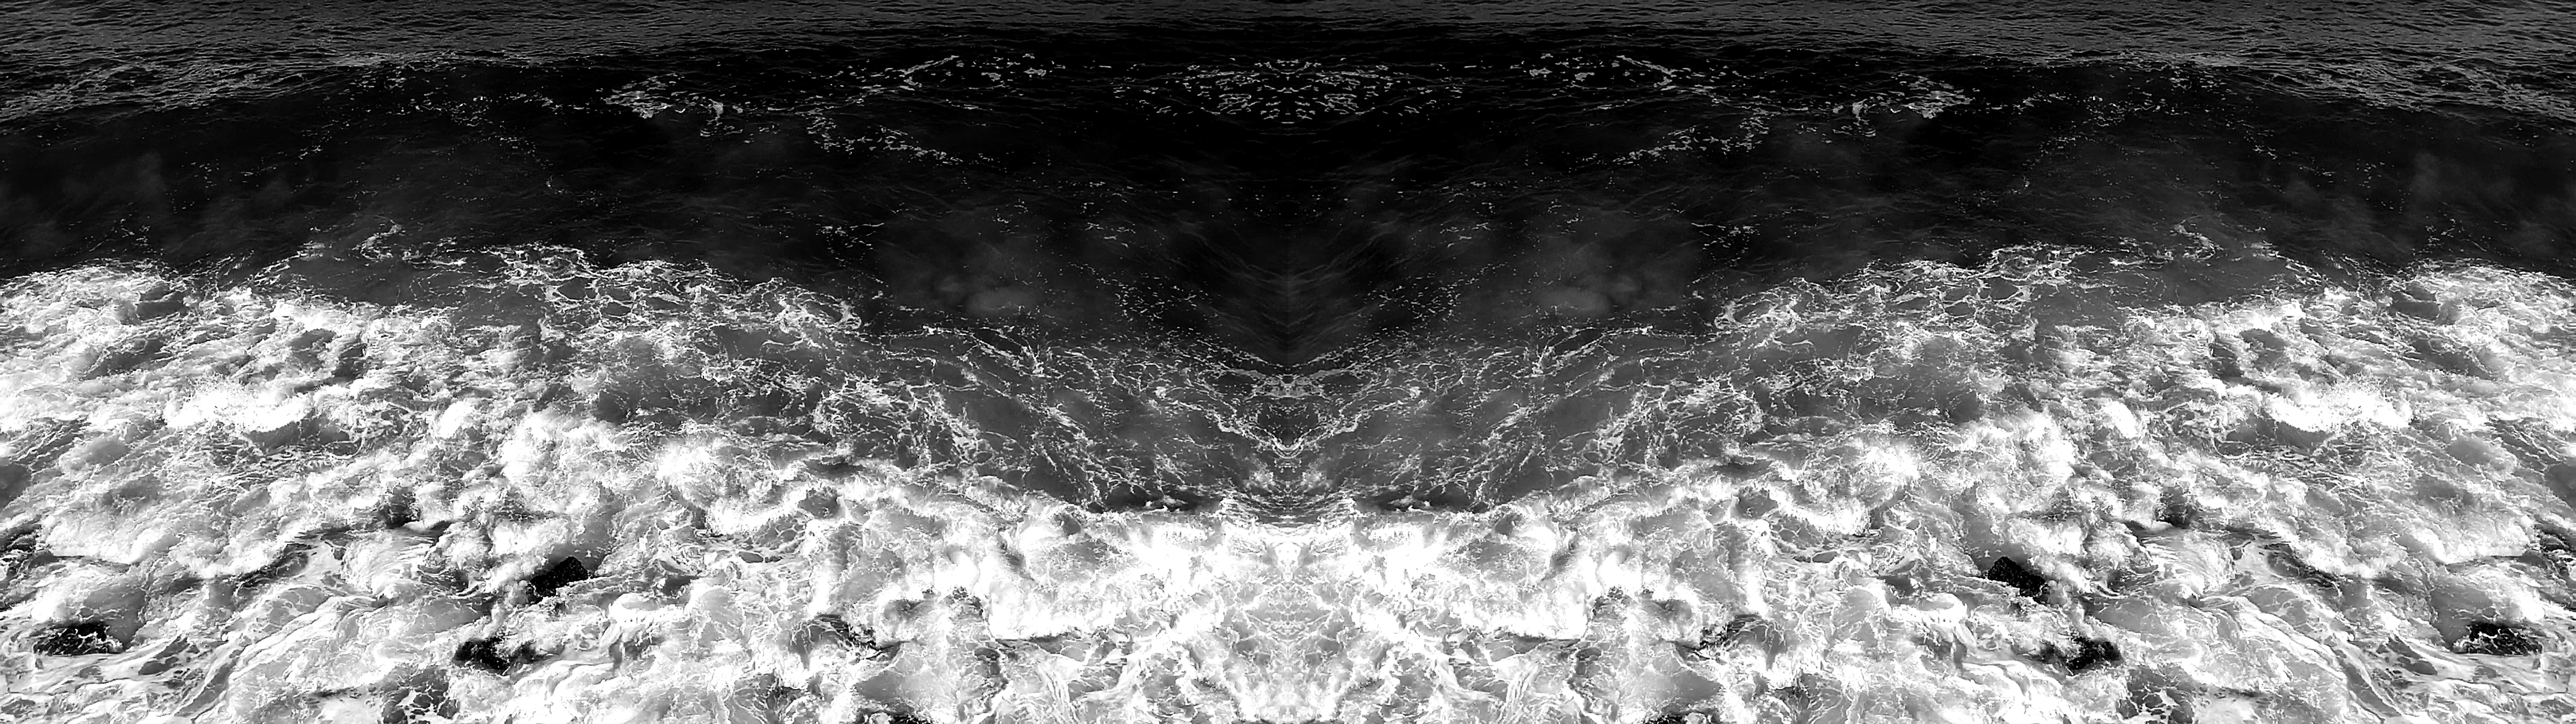 Across Dark Waters, 2019, 6.52 mins, two-channel video projection with sound